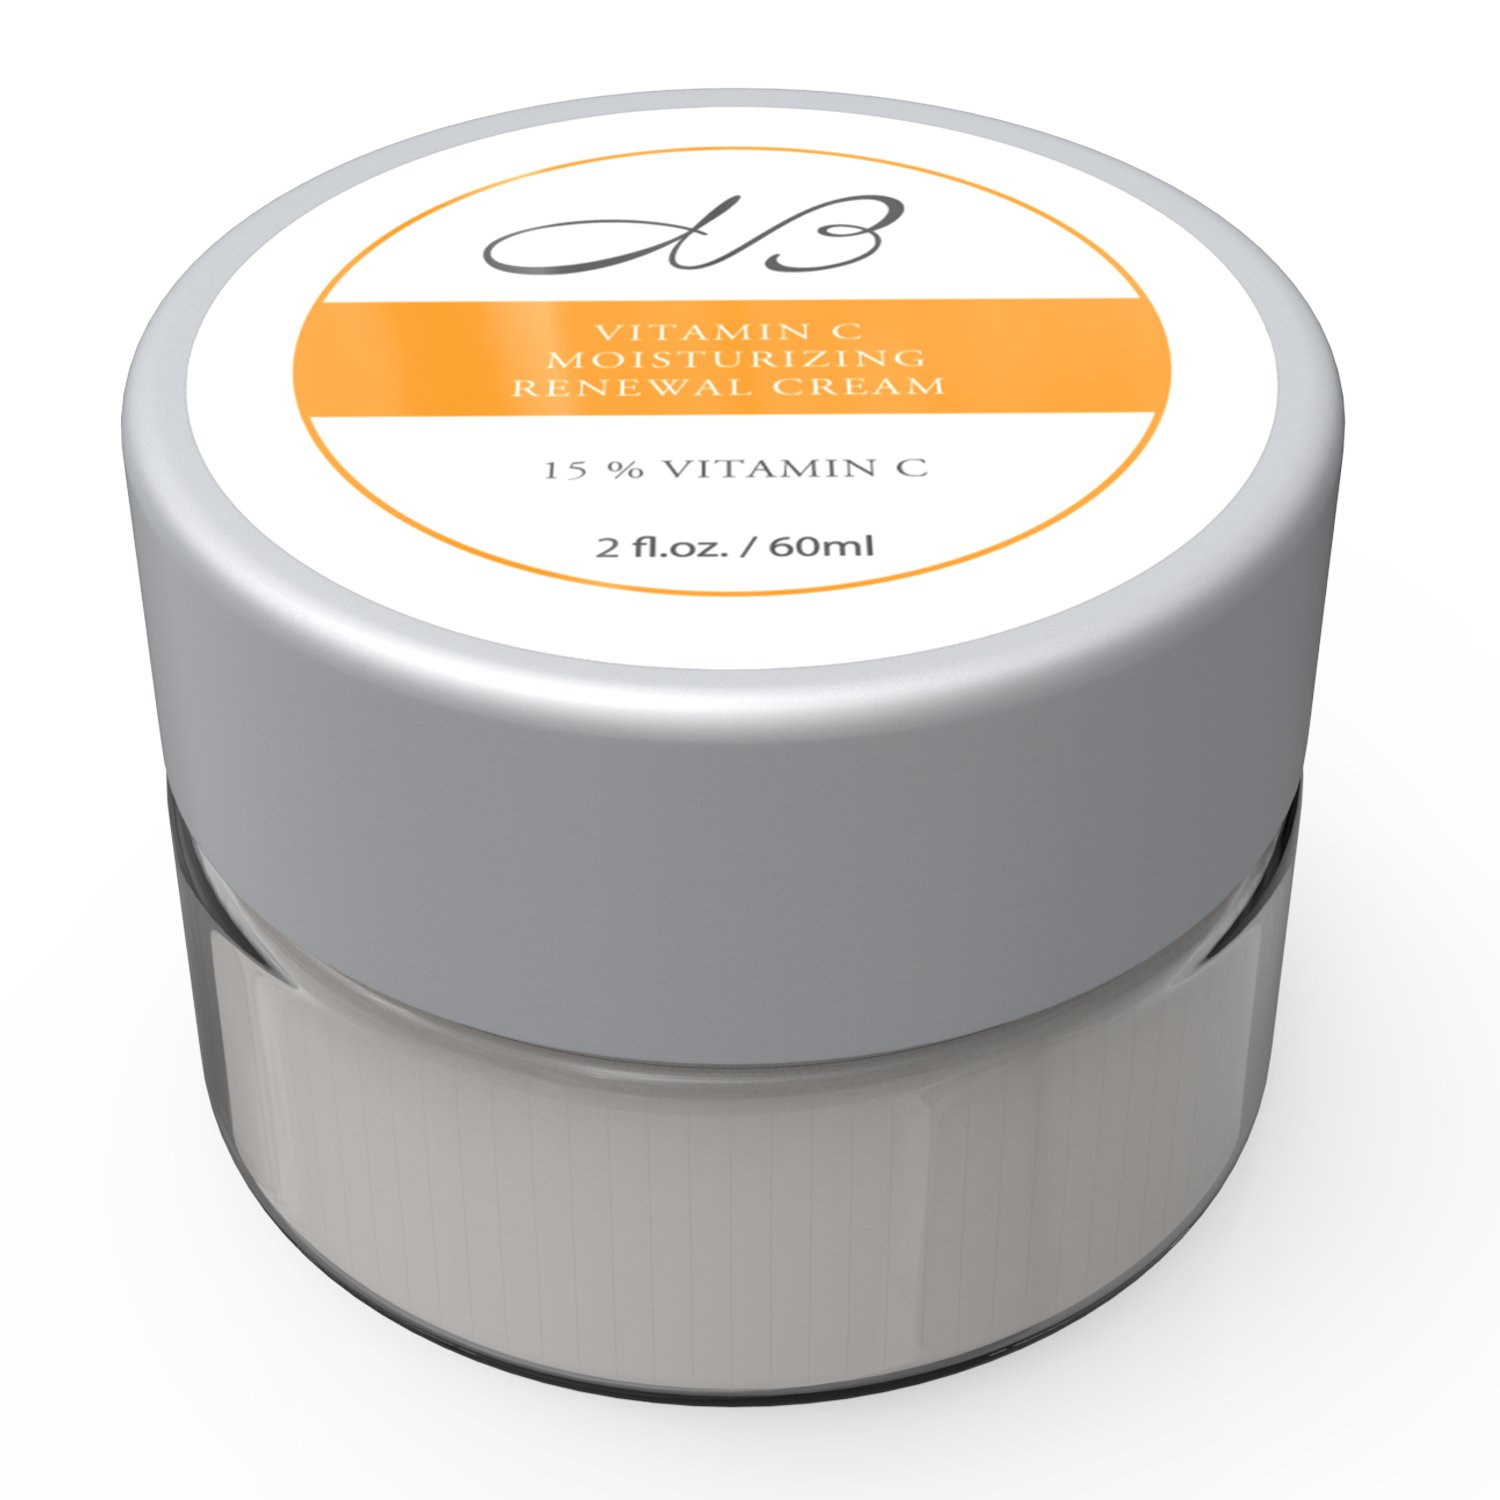 Monica's Beauty Vitamin C Moisturizing Renewal Cream with Shea Butter, Jojoba Oil and Sodium Ascorbyl Phosphate, 2 fl. oz.